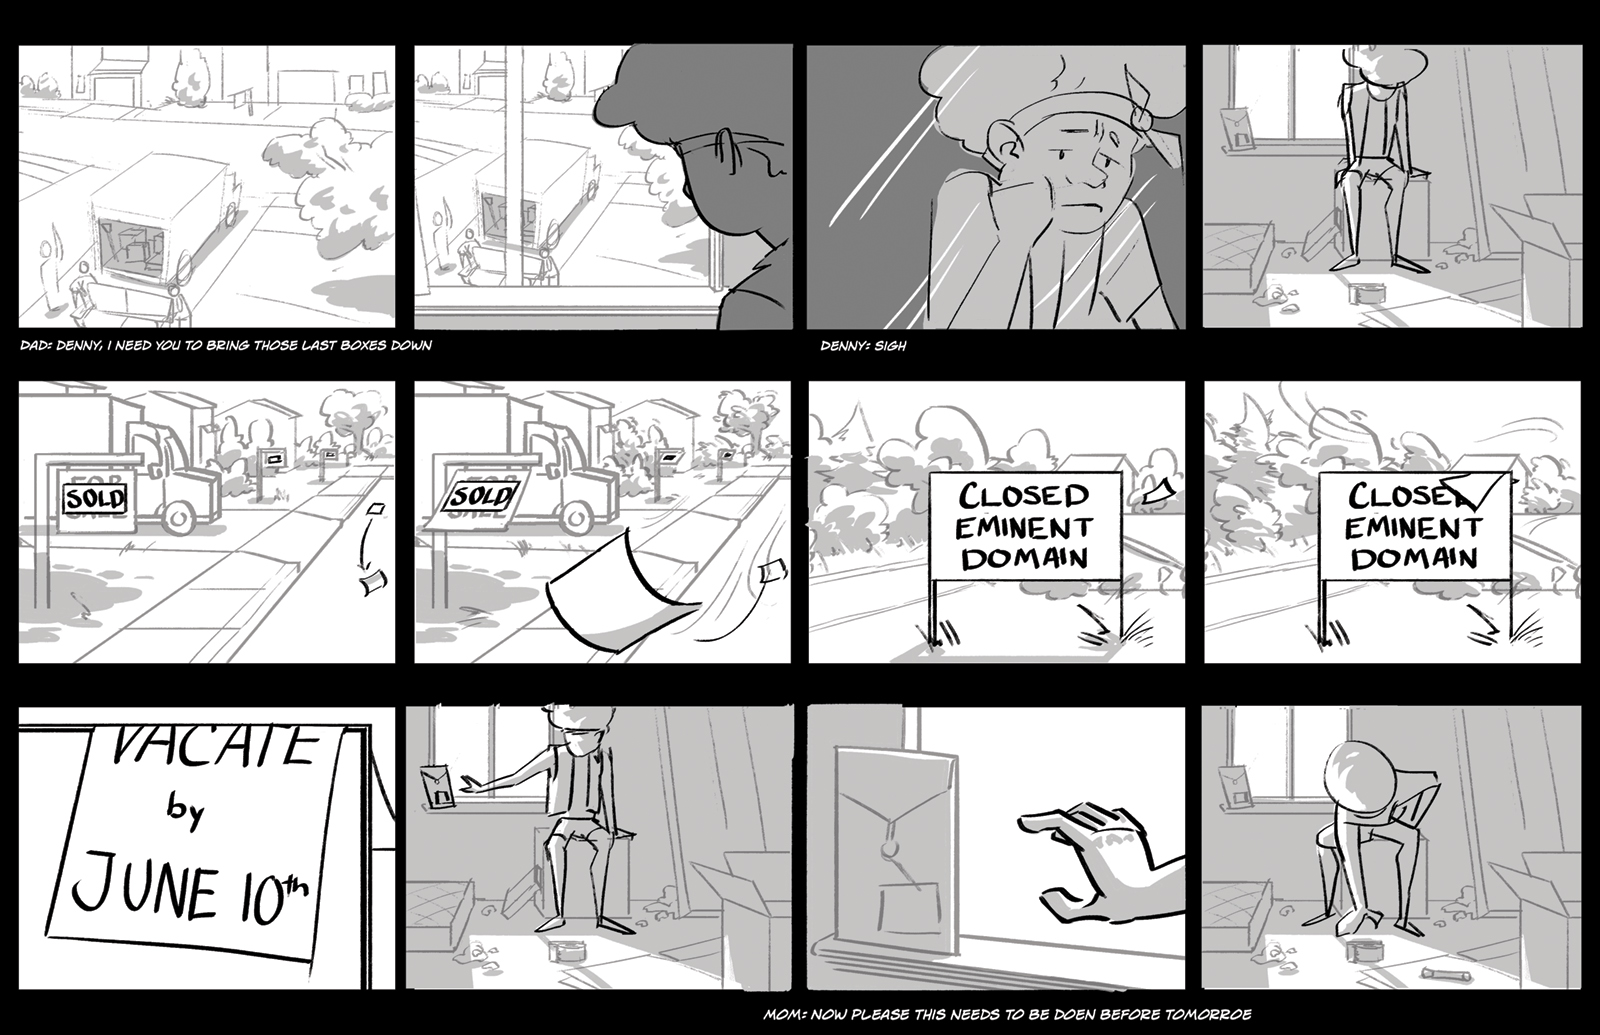 First storyboard for A Light That Beckons Home. Denny packs boxes. The camera shows the closed sign for their neighborhood.